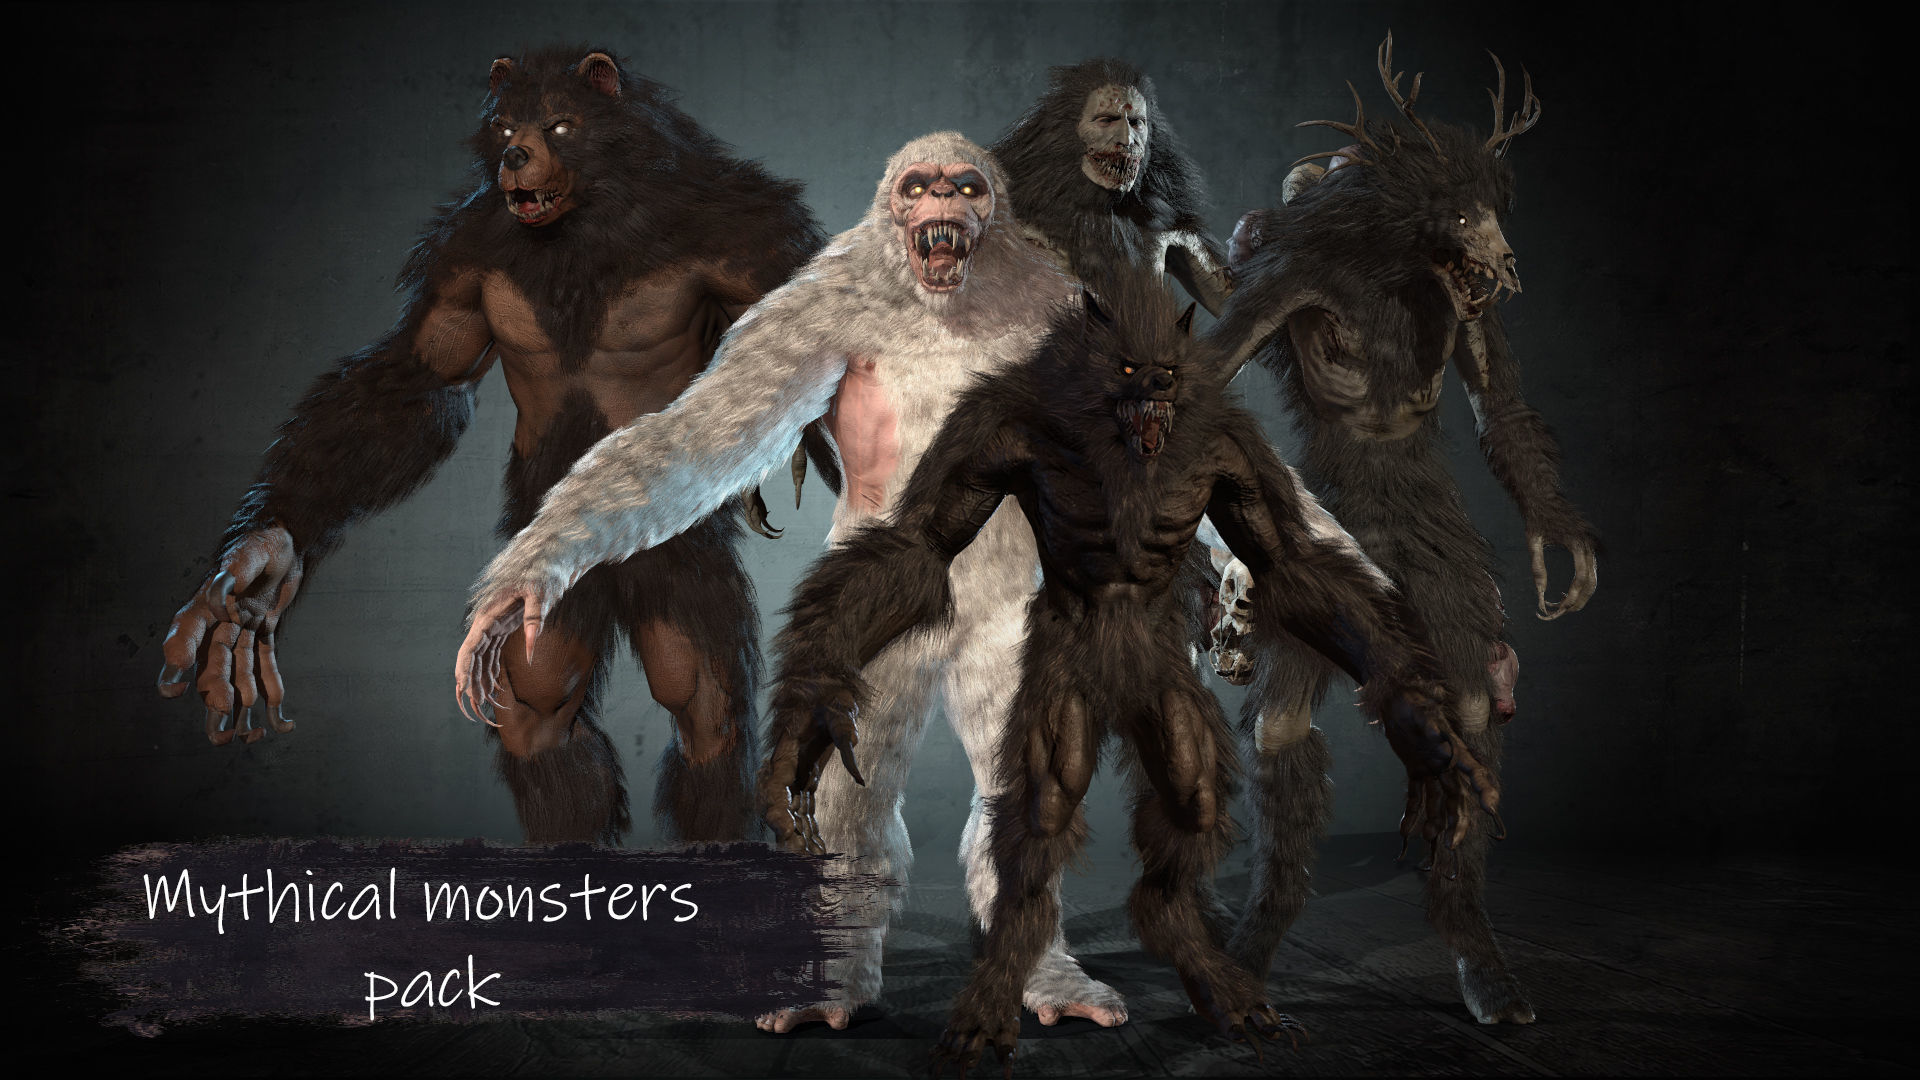 Mithical monsters collection pack1